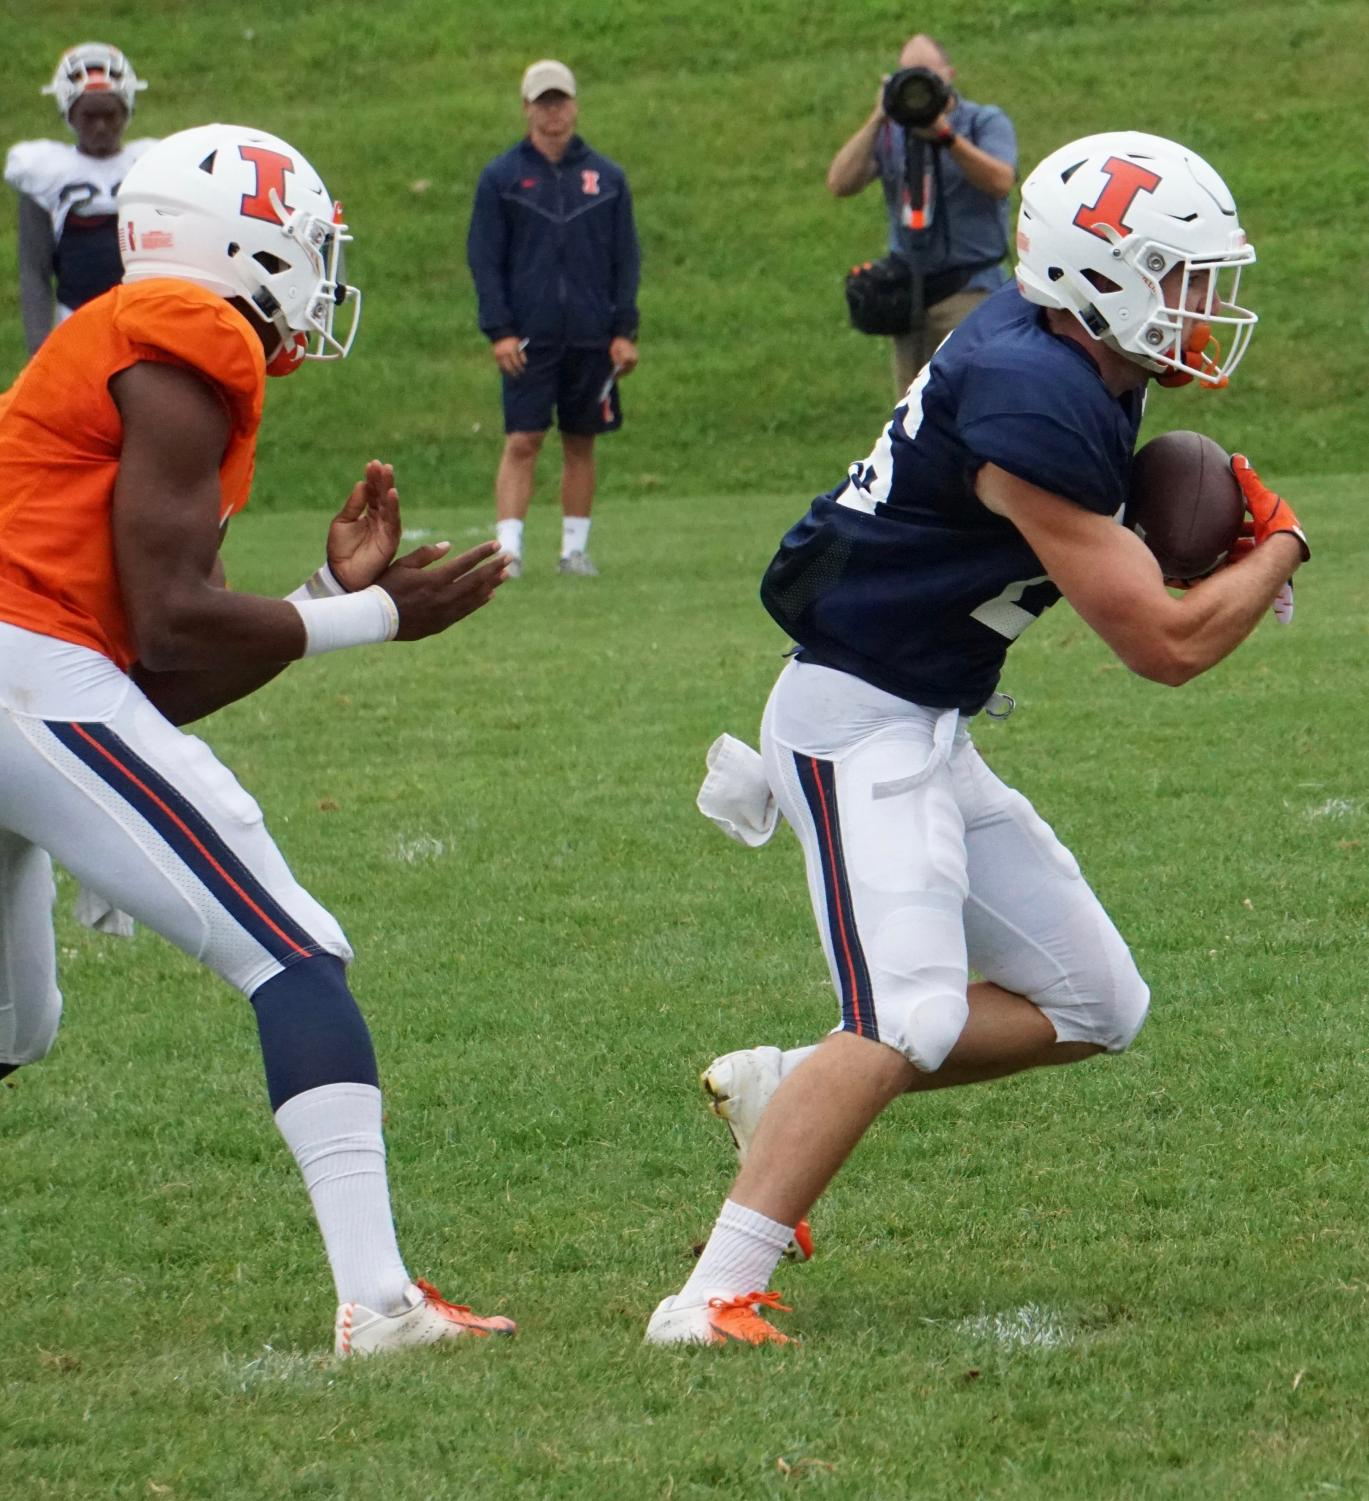 Sophomore running back Mike Epstein grabs the handoff during practice drills at Illinois football training camp on Friday. Offensive Coordinator Rod Smith is looking to utilize the team's running back depth as the season approaches.